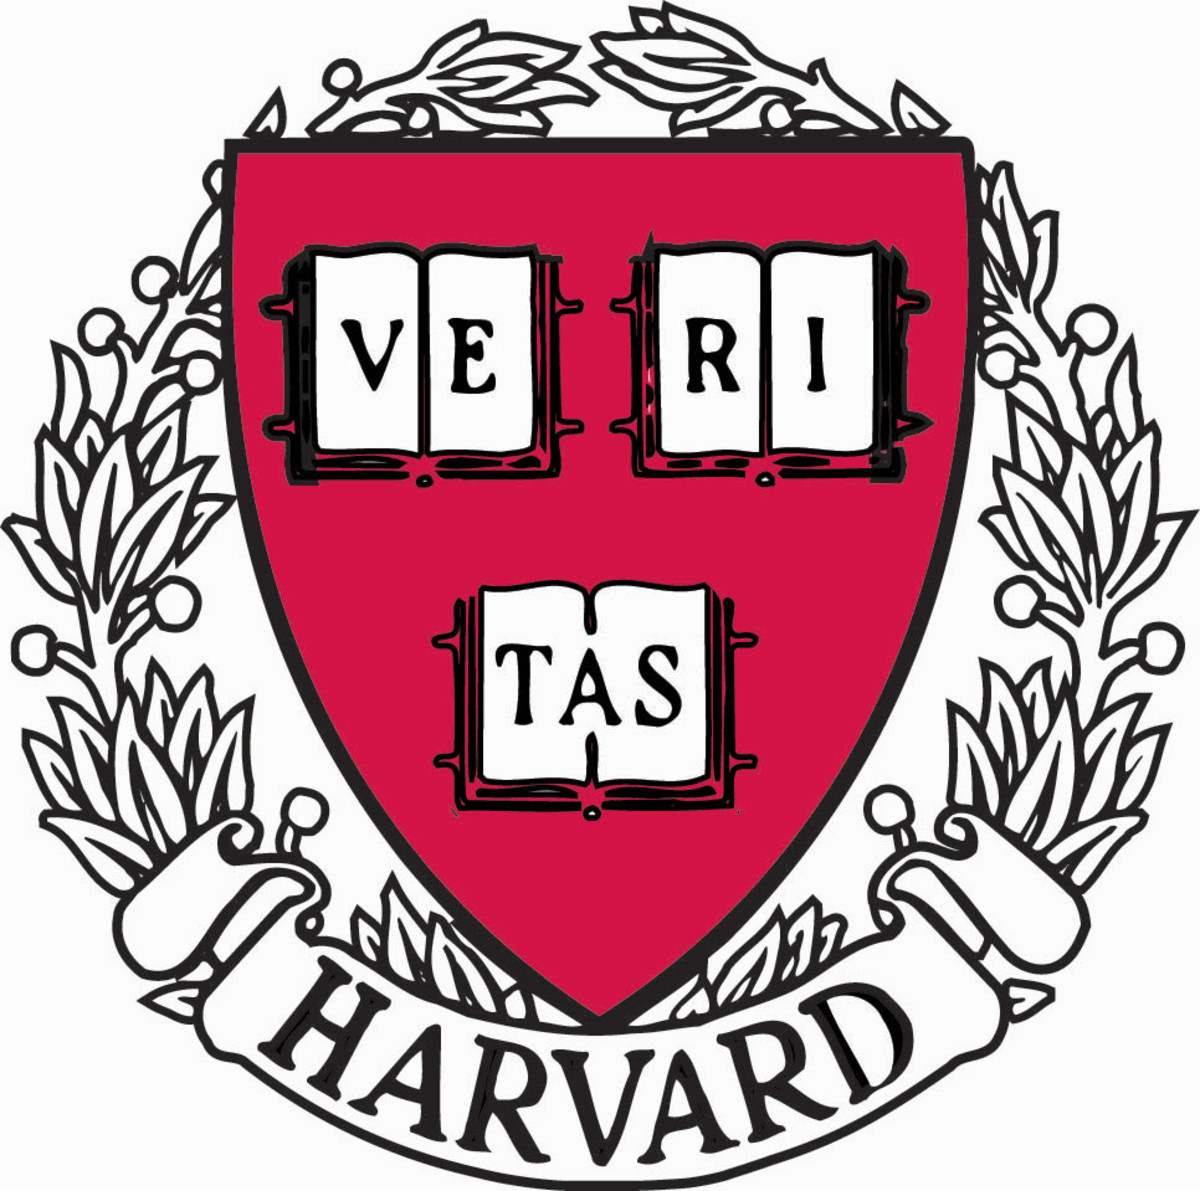 "THE ORIGINAL MOTTO OF HARVARD WAS ""VERITAS POR CHRISTO ET ECCLESIA"" WHICH MEANS ""TRUTH FOR CHRIST AND HIS CHURCH.""  IN THE 20TH CENTURY IT WAS SHORTENED TO THE CURRENT MOTTO ABOVE: MERELY ""TRUTH"""